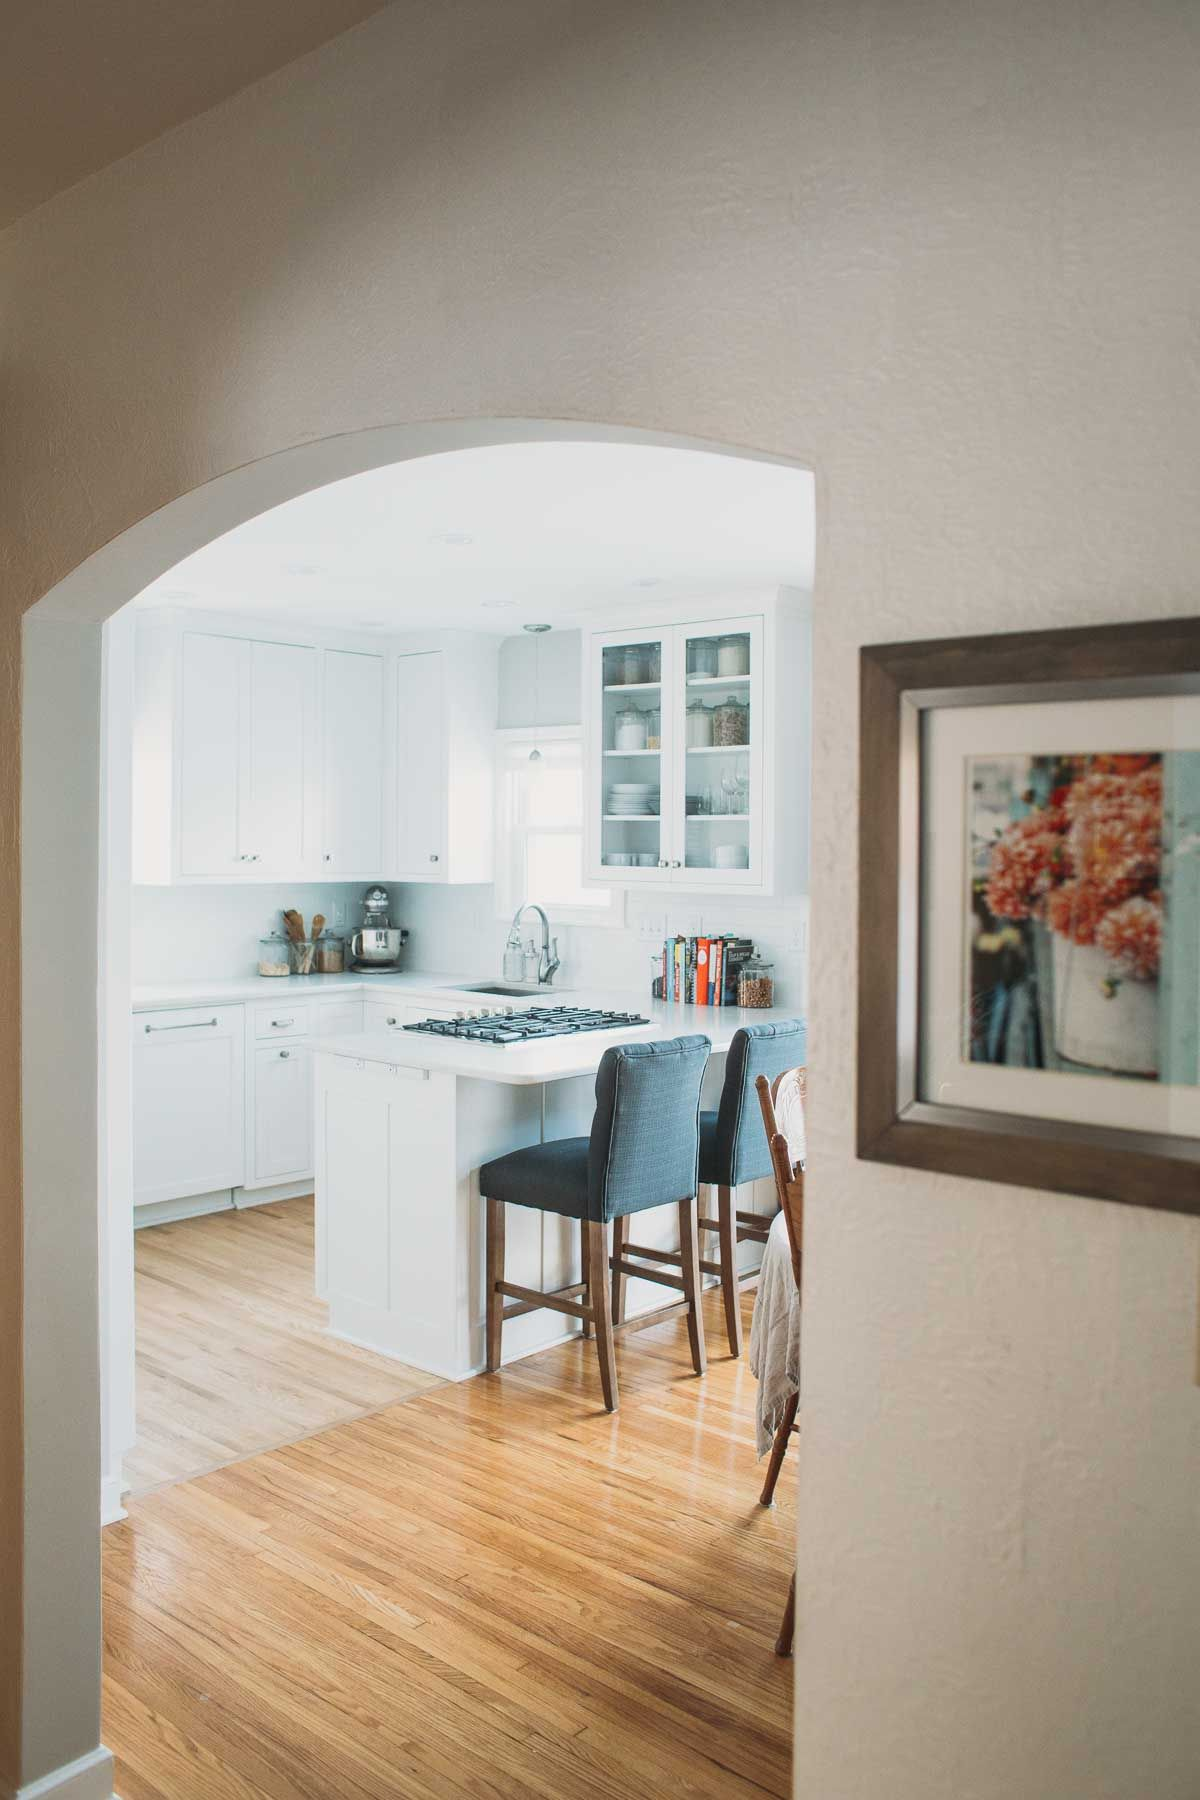 Kitchen Remodel: The Final Reveal | Lebenshof | Pinterest ...